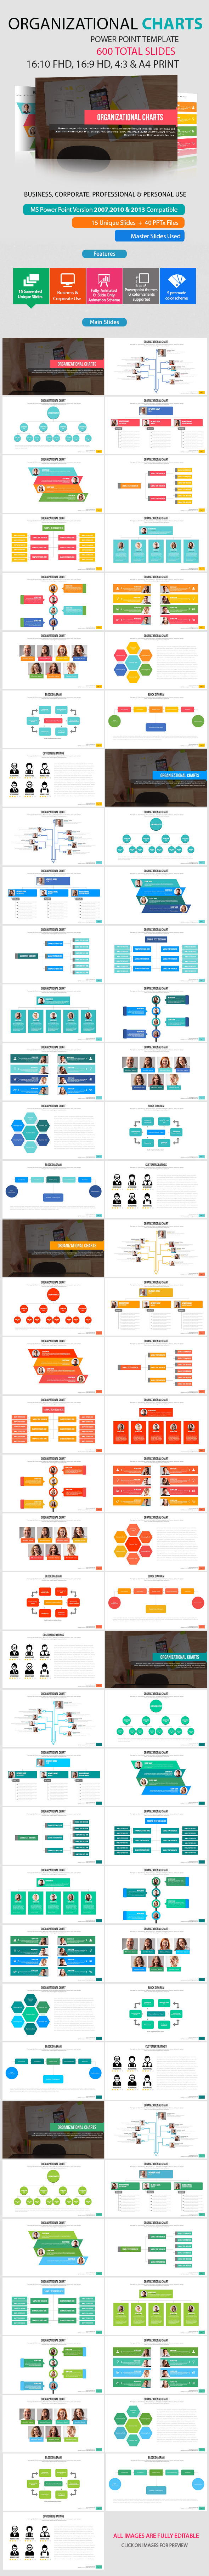 Organizational Chart Power Point Presentation - Abstract PowerPoint Templates